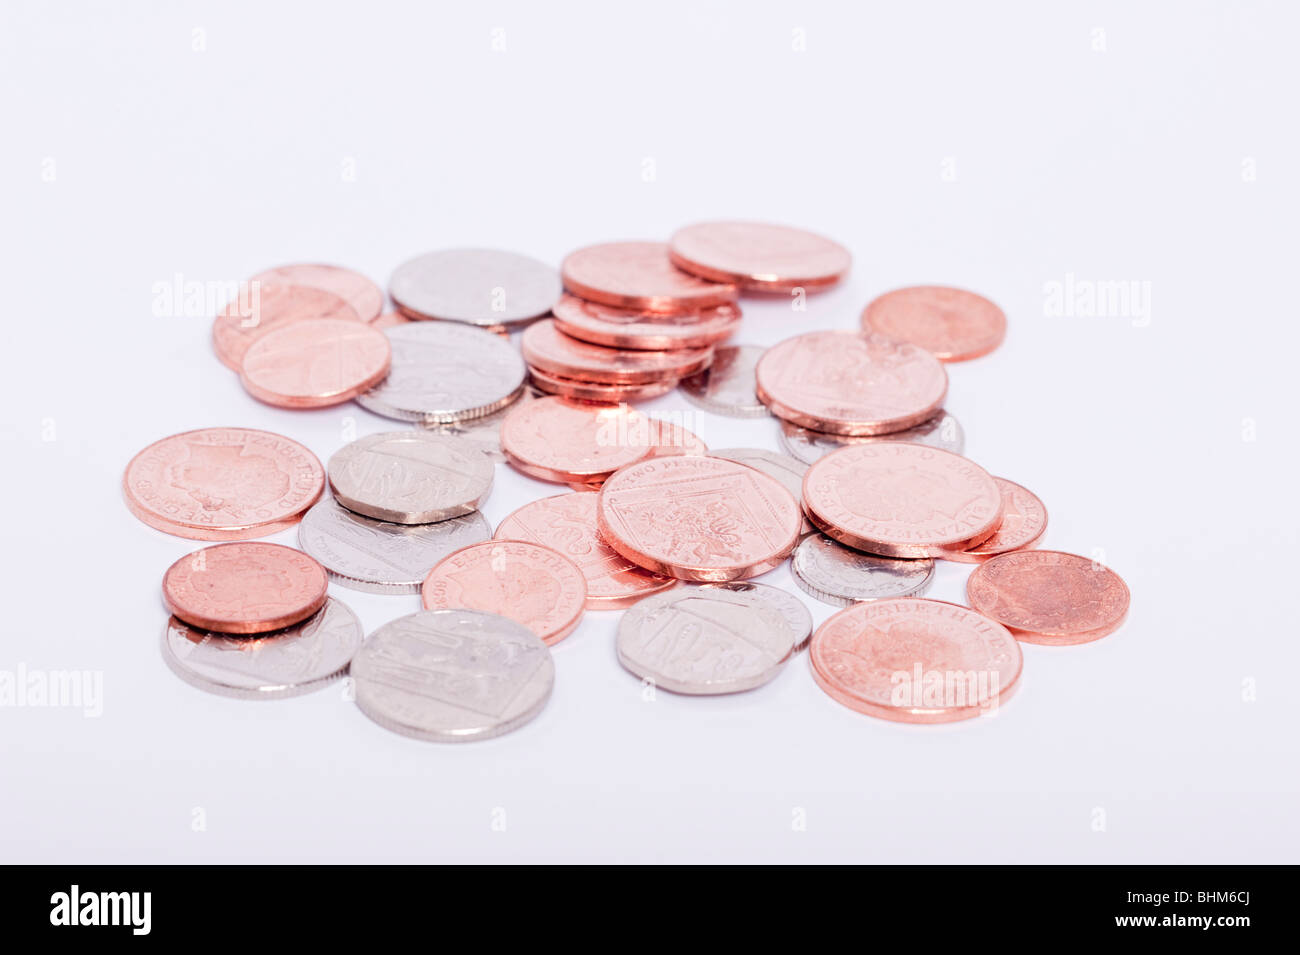 A selection of Uk currency coins ( coppers & silver ) on a white background - Stock Image